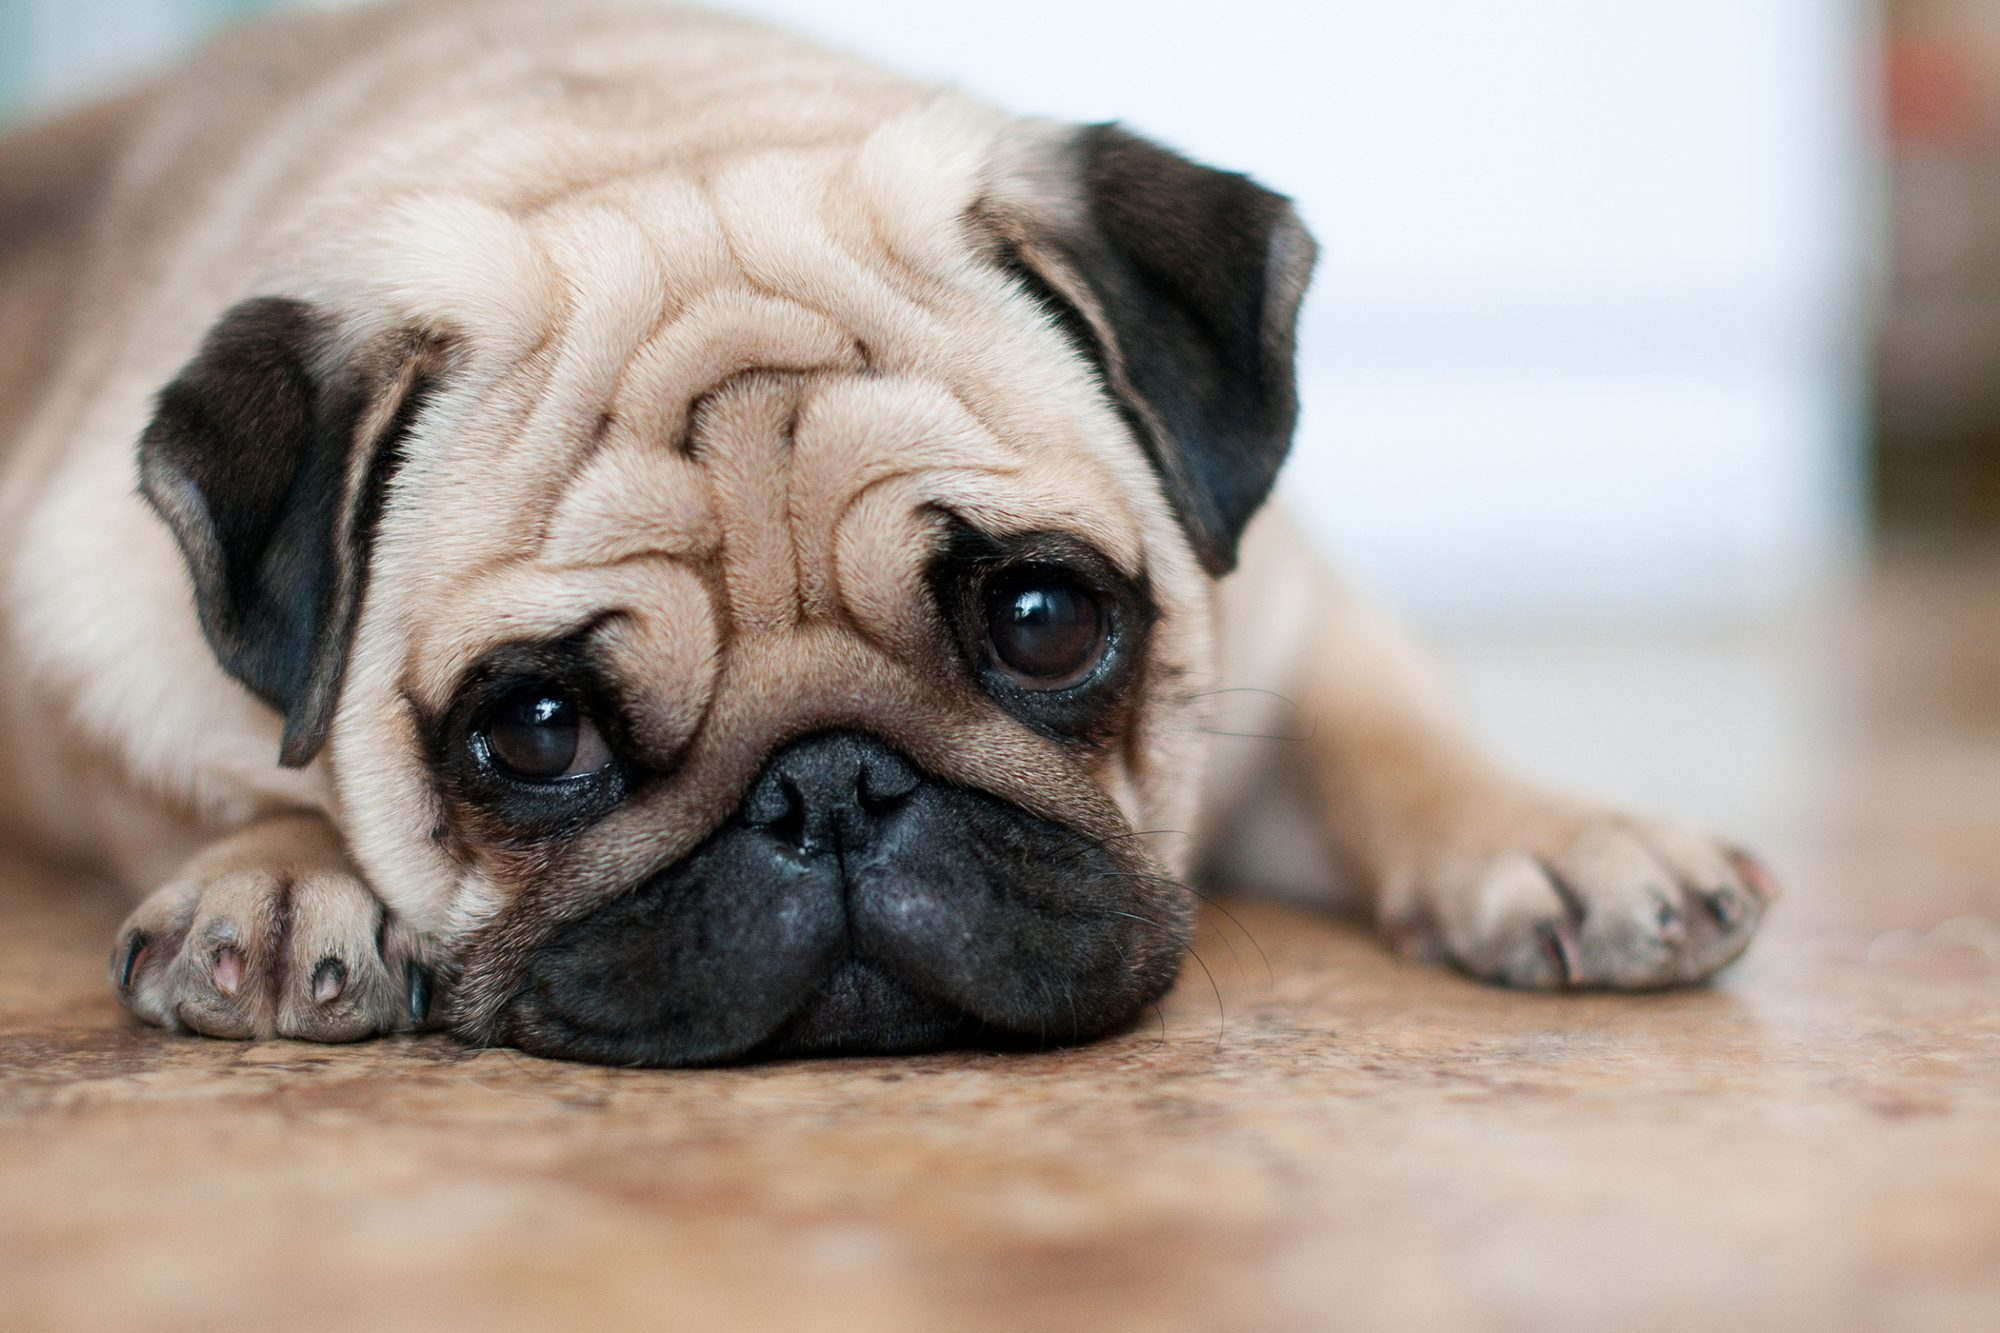 Forlorn pug lays on floor and looks at camera